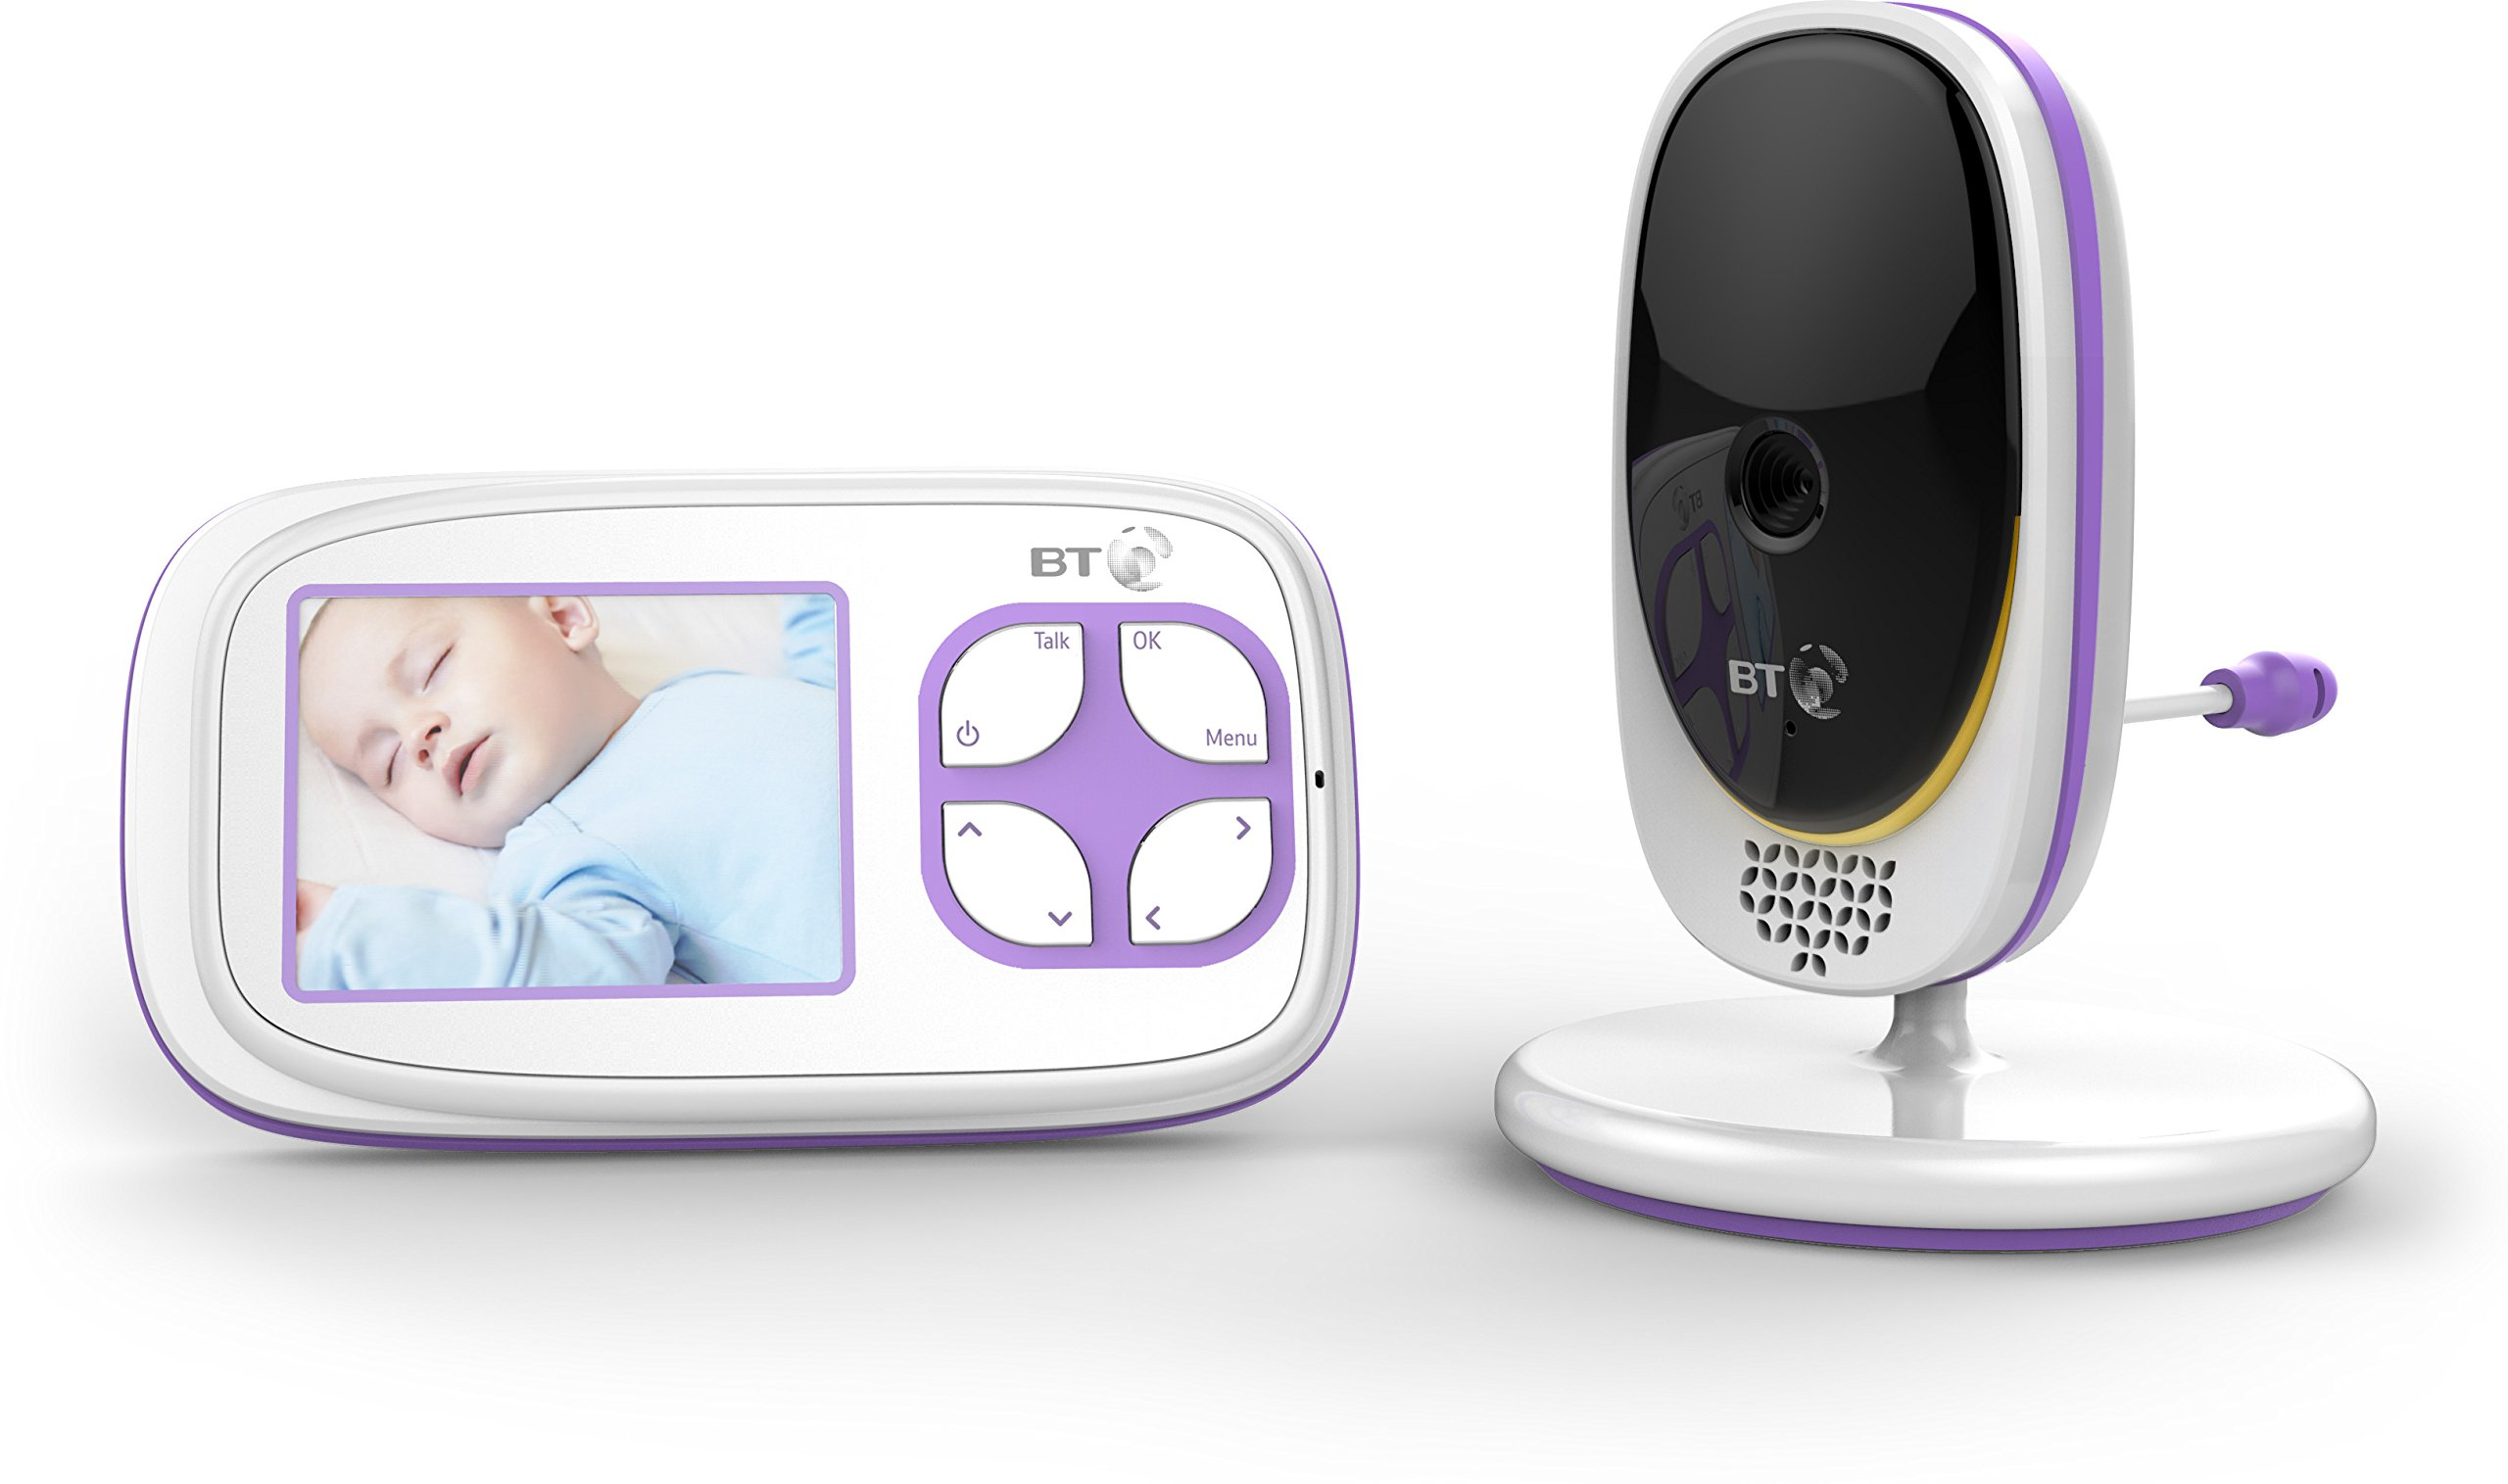 BT Video Baby Monitor 3000 BT 2.8 inch screen with night vision and 5 lullabies Manual (non-remote) pan/tilt mechanism Portable parent unit so you can move freely around your home with two way talk back.Temperature display - for added peace of mind/Features infra red night vision so you can see your baby in the dark/Low battery indicator 1